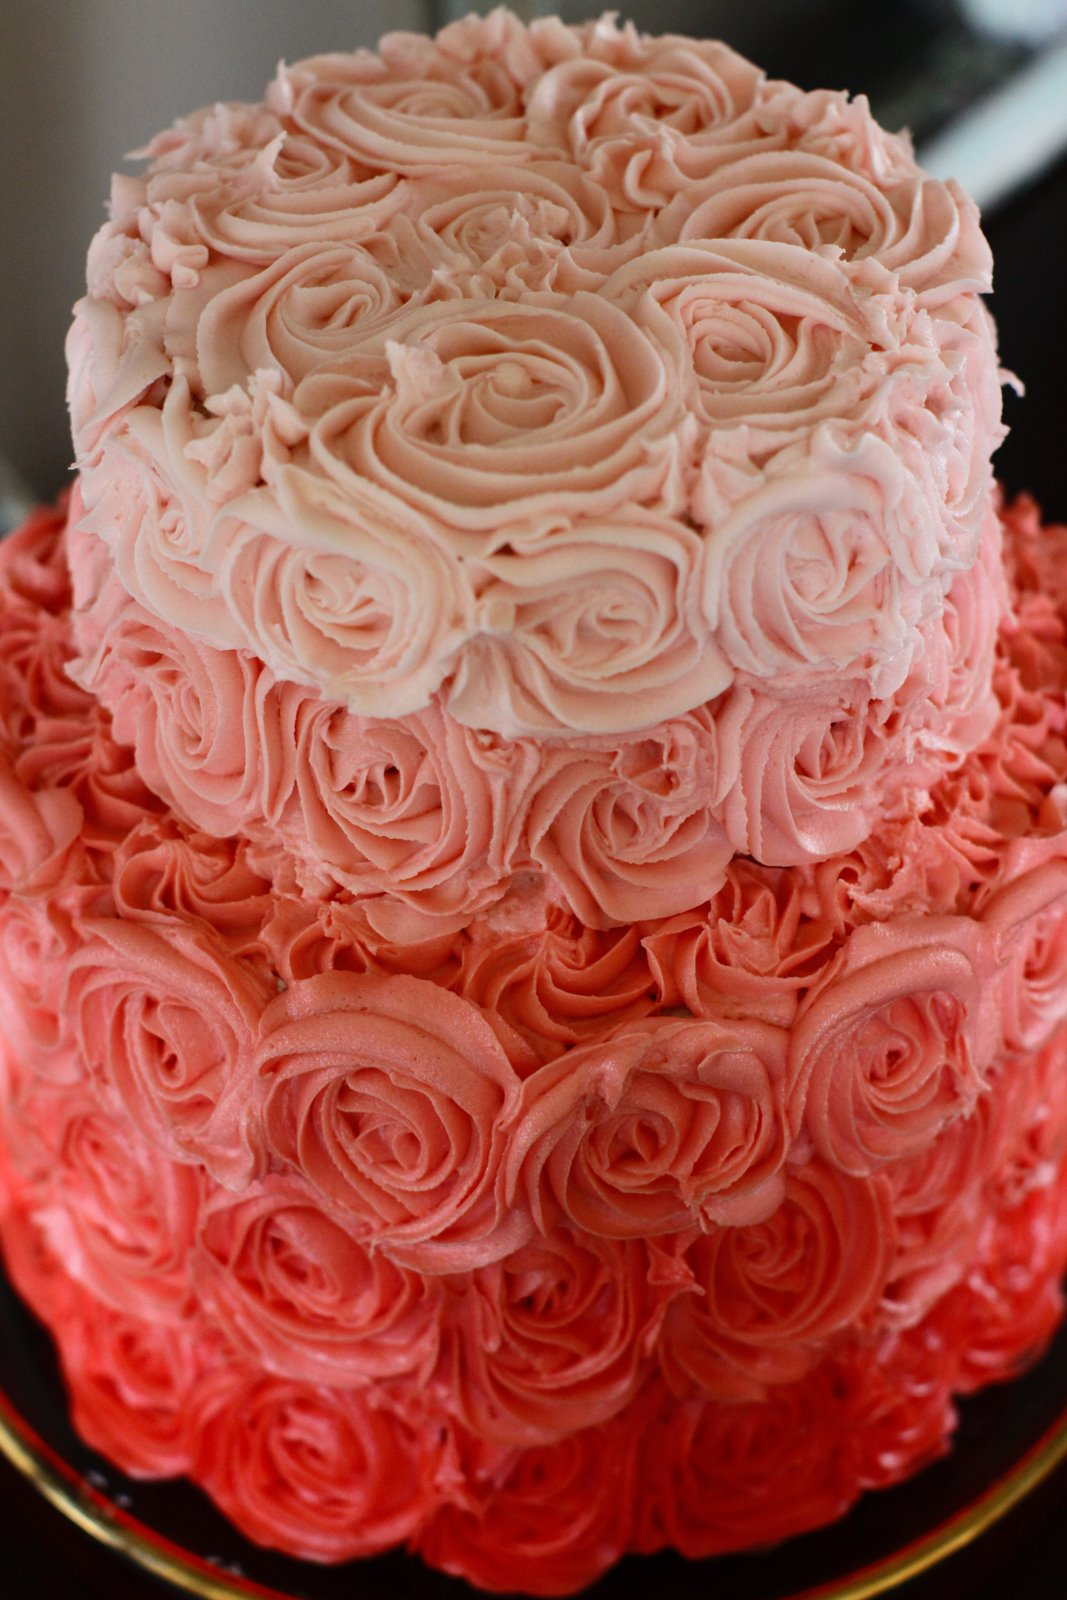 Rose Cake Design Icing : Ombre rose wedding cake OneWed.com